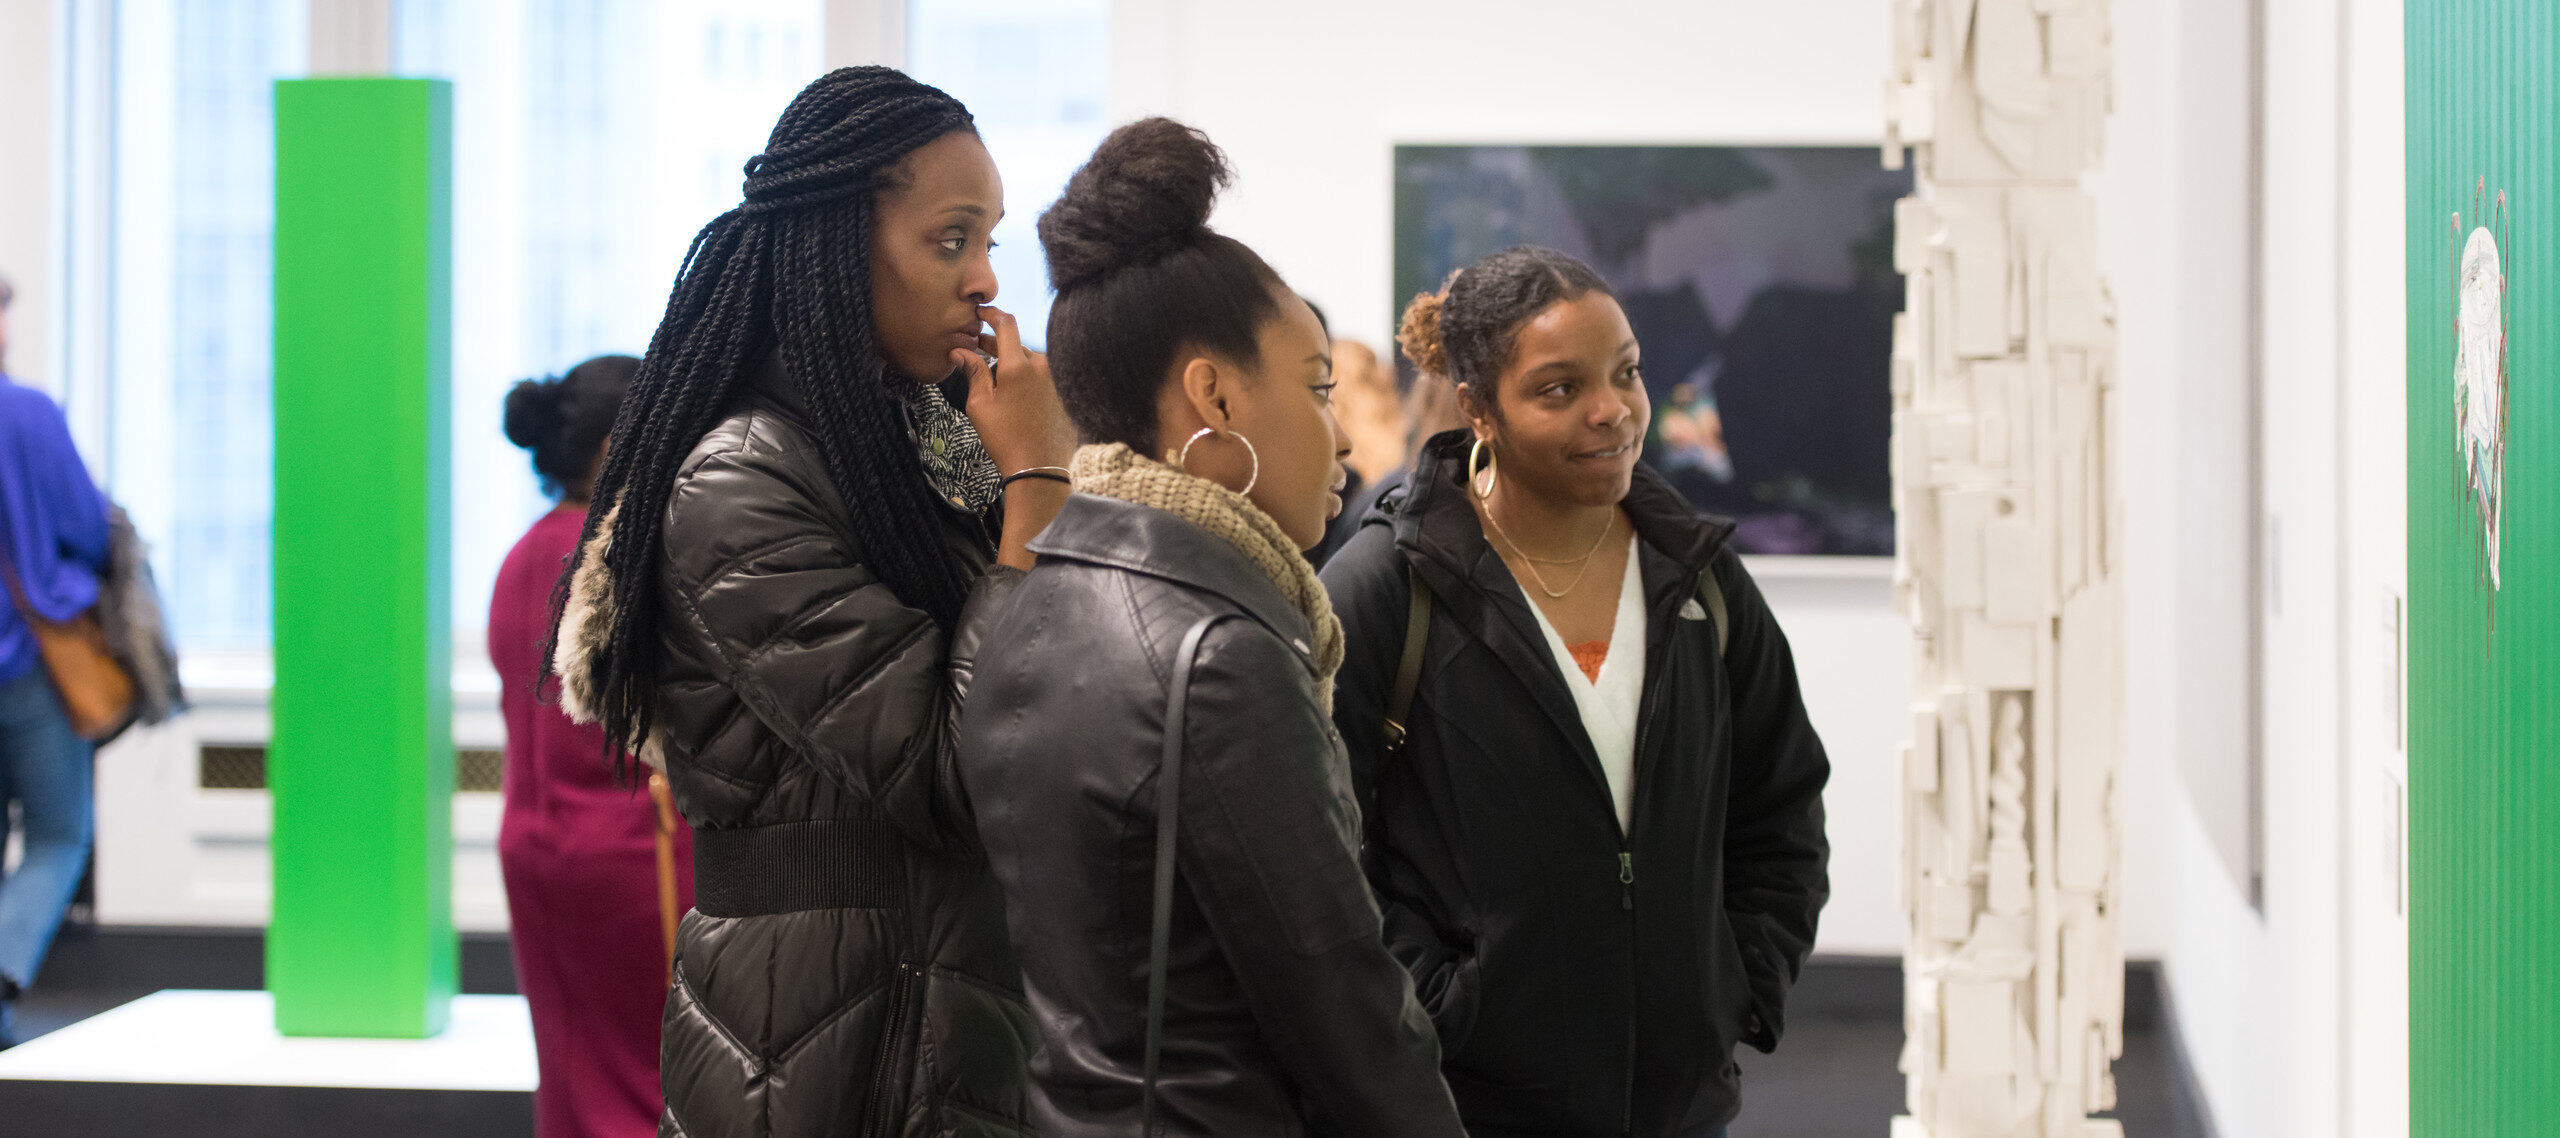 Three dark-skinned young adults in winter jackets stand in an art gallery near a white pillar made of a medley of found items. They wear black winter jackets and smile at the artwork.